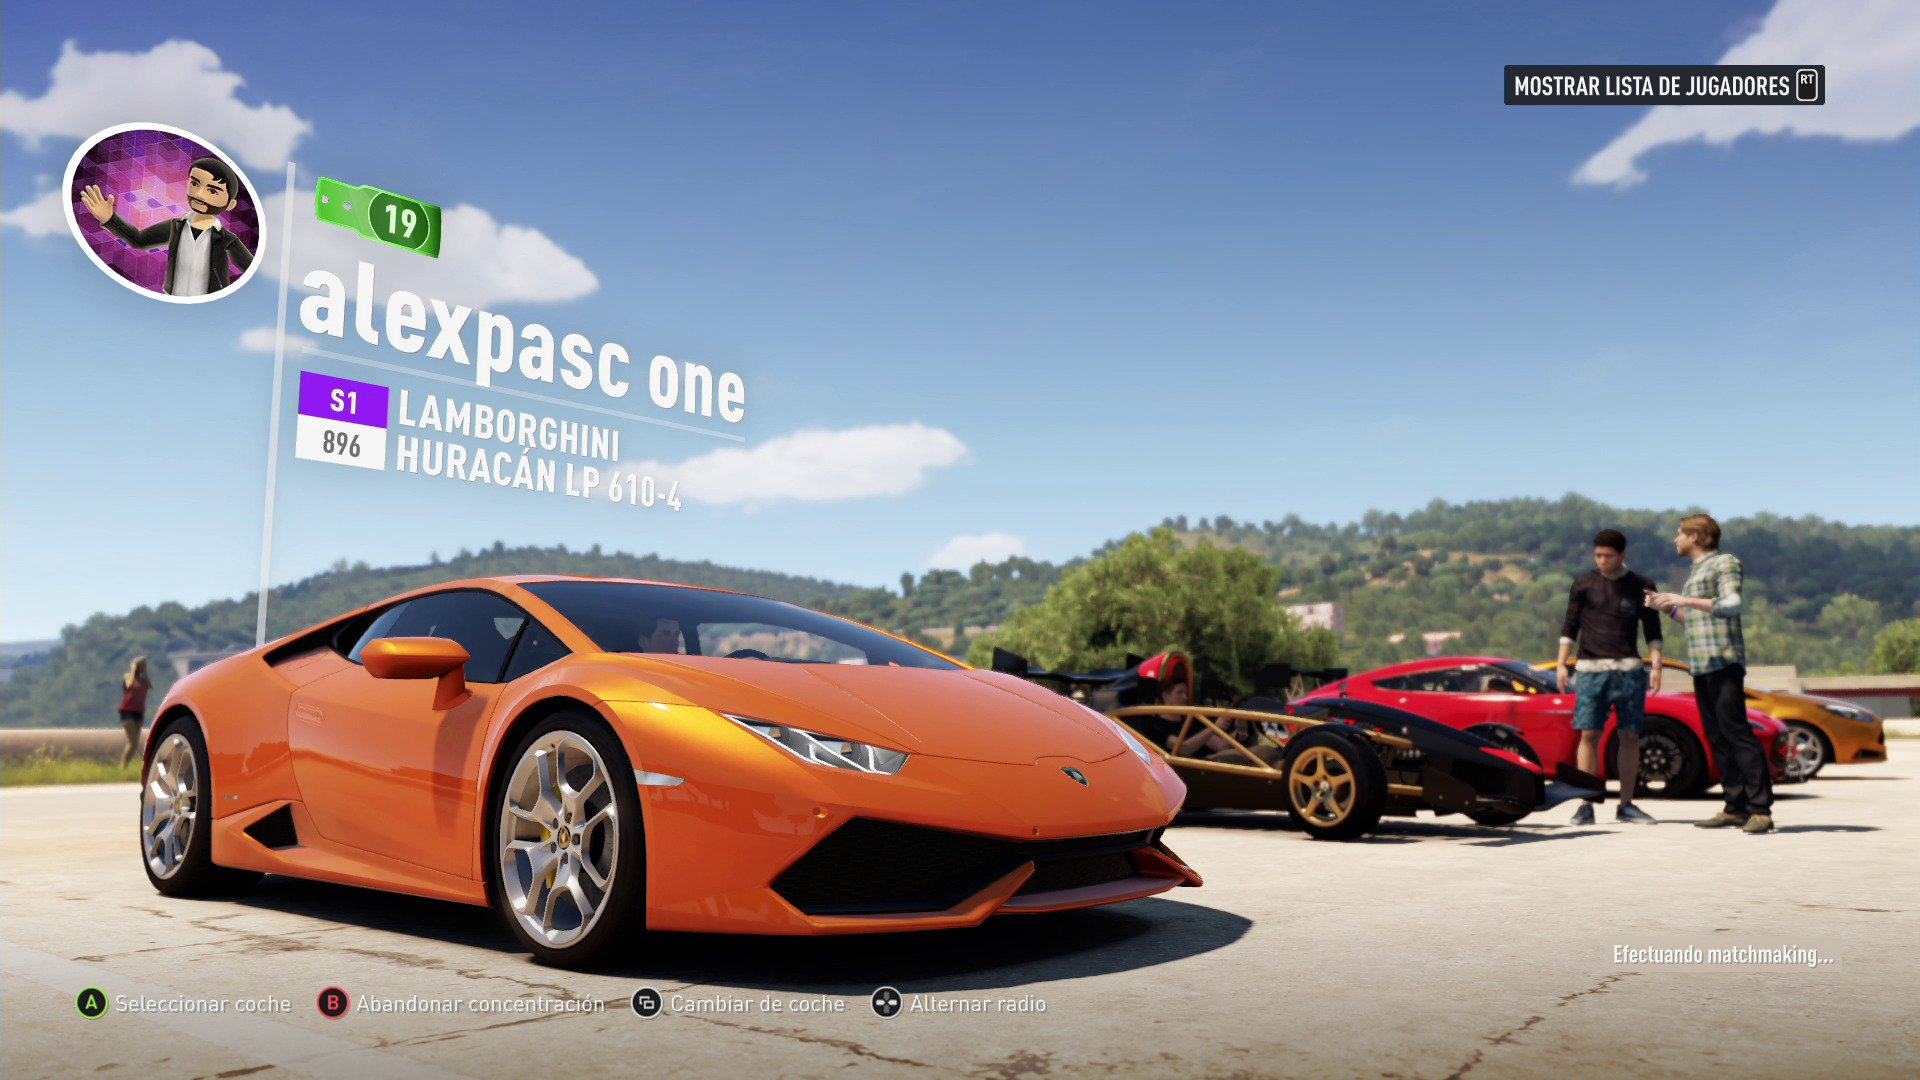 forza horizon 2 para xbox one 3djuegos. Black Bedroom Furniture Sets. Home Design Ideas